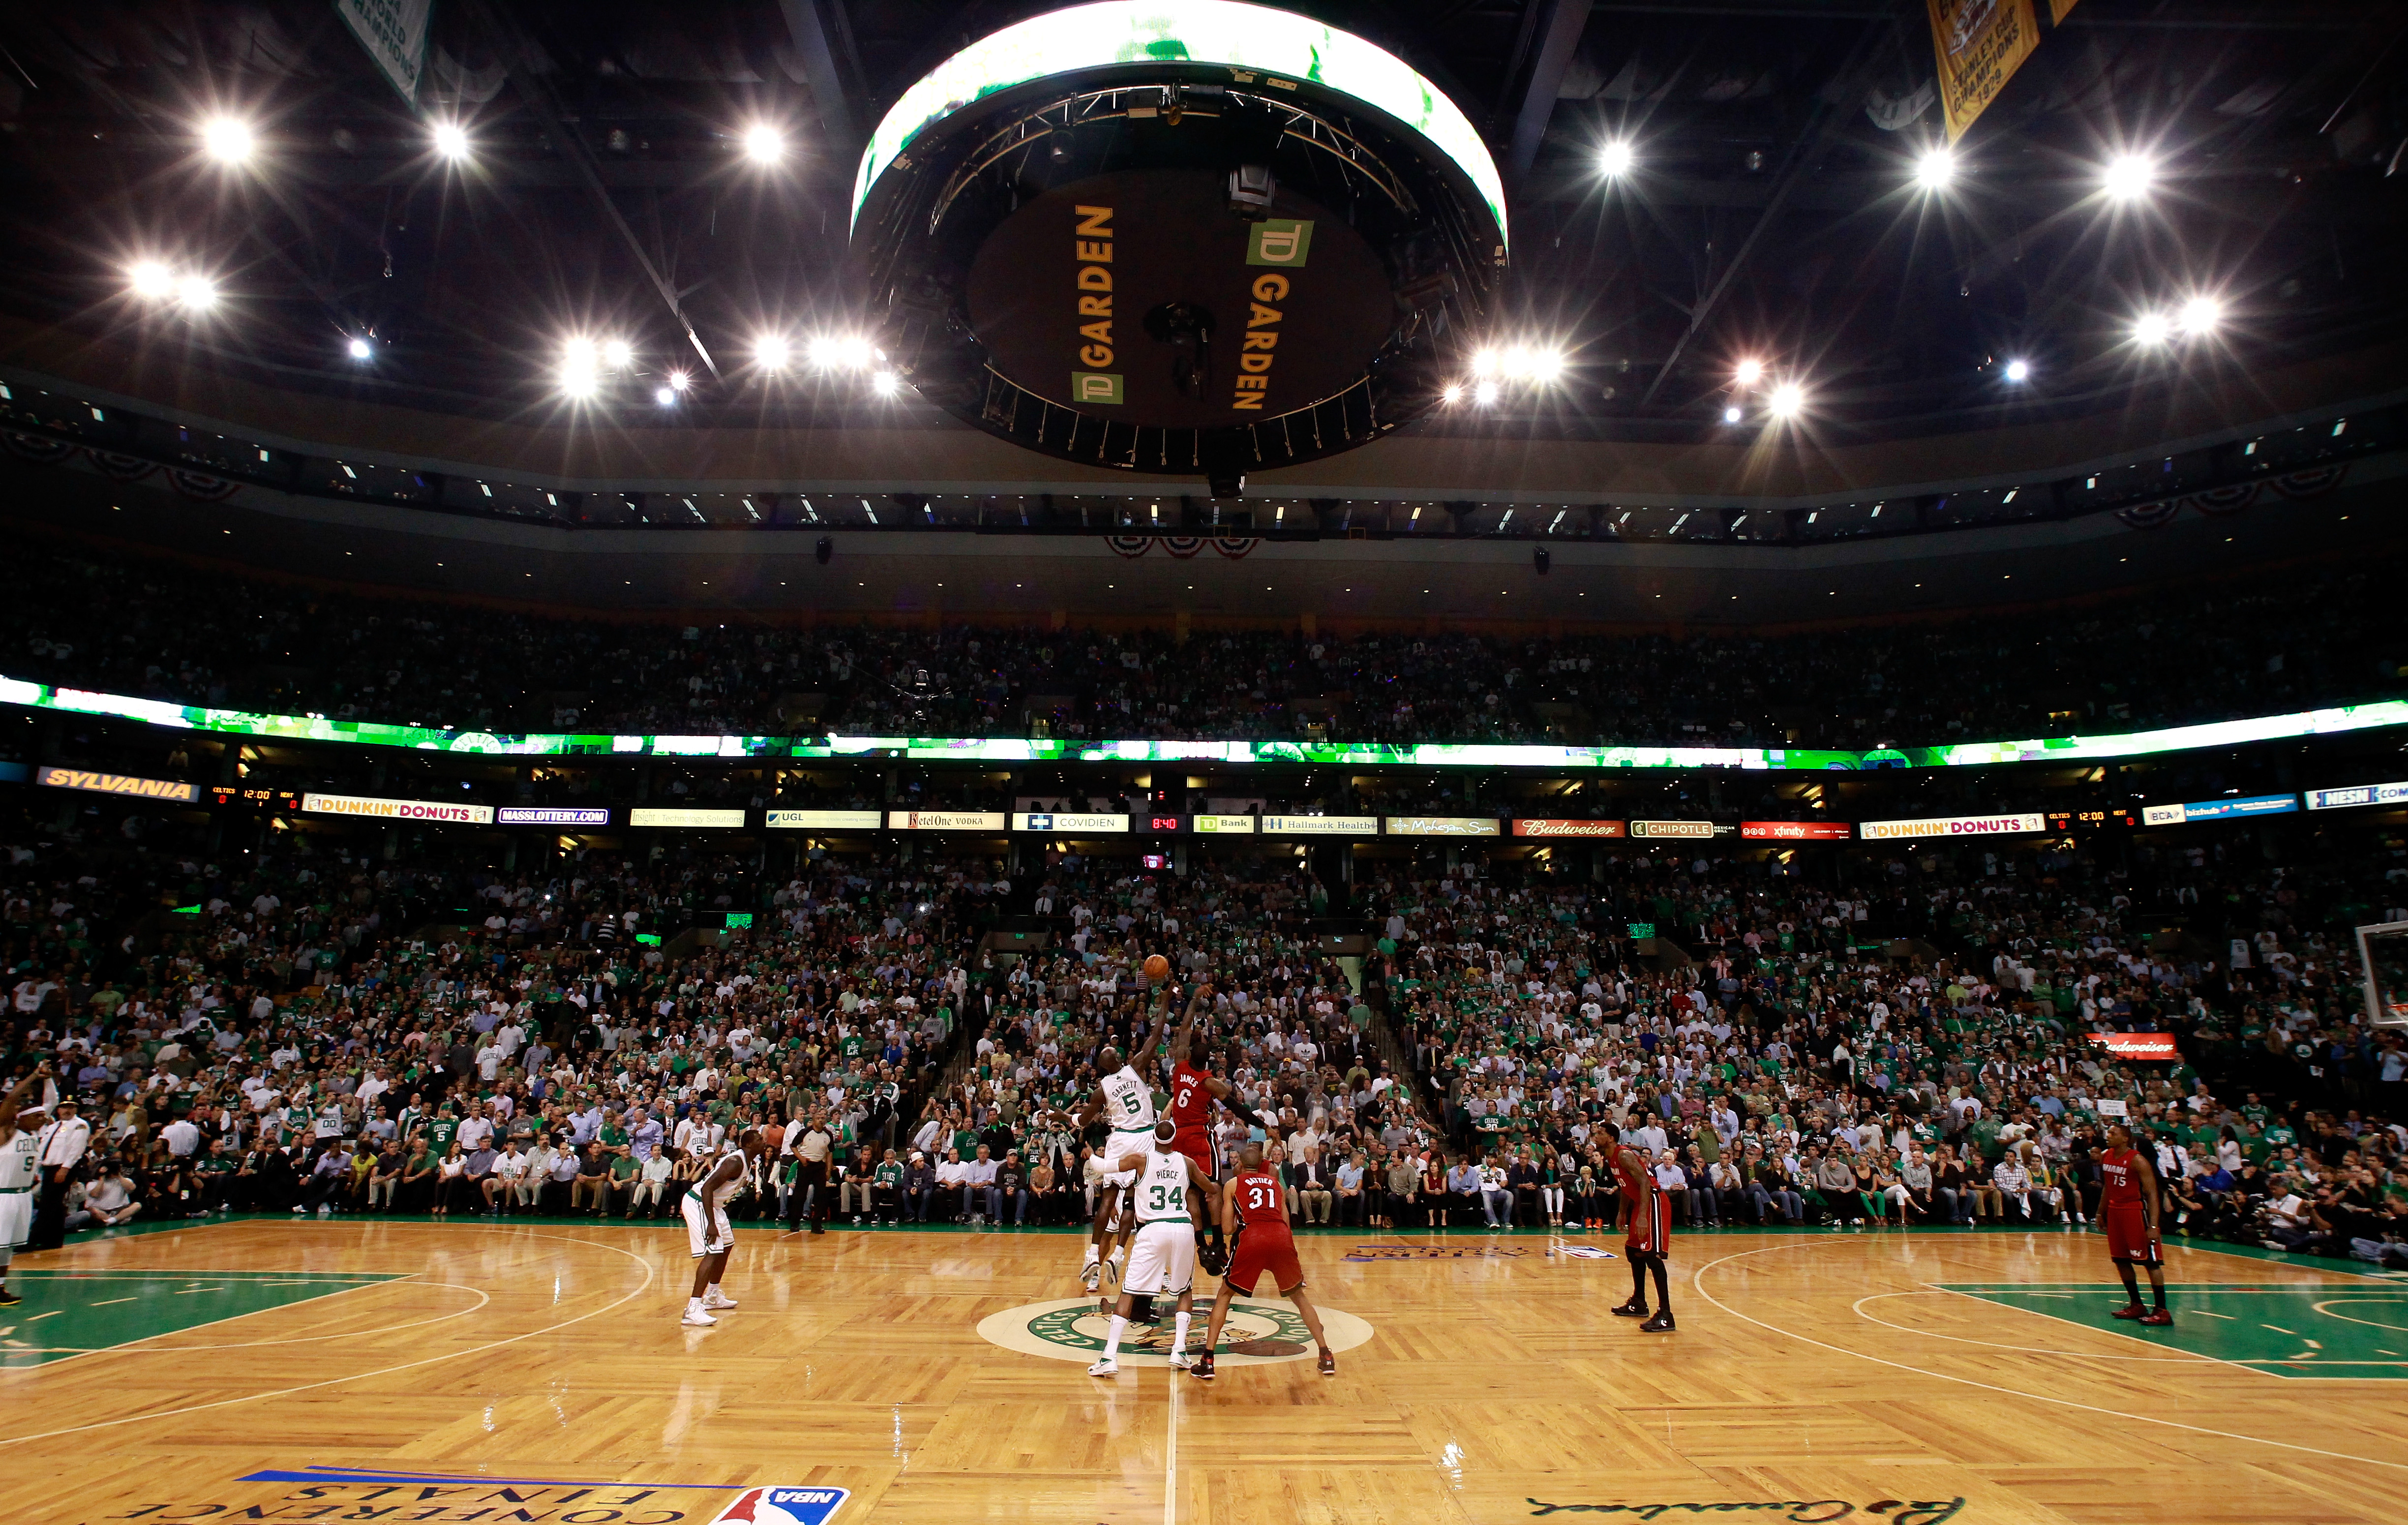 The King Takes His Throne Lebron James Personal 2012 Game 6 Victory Over The Celtics The Undefeated